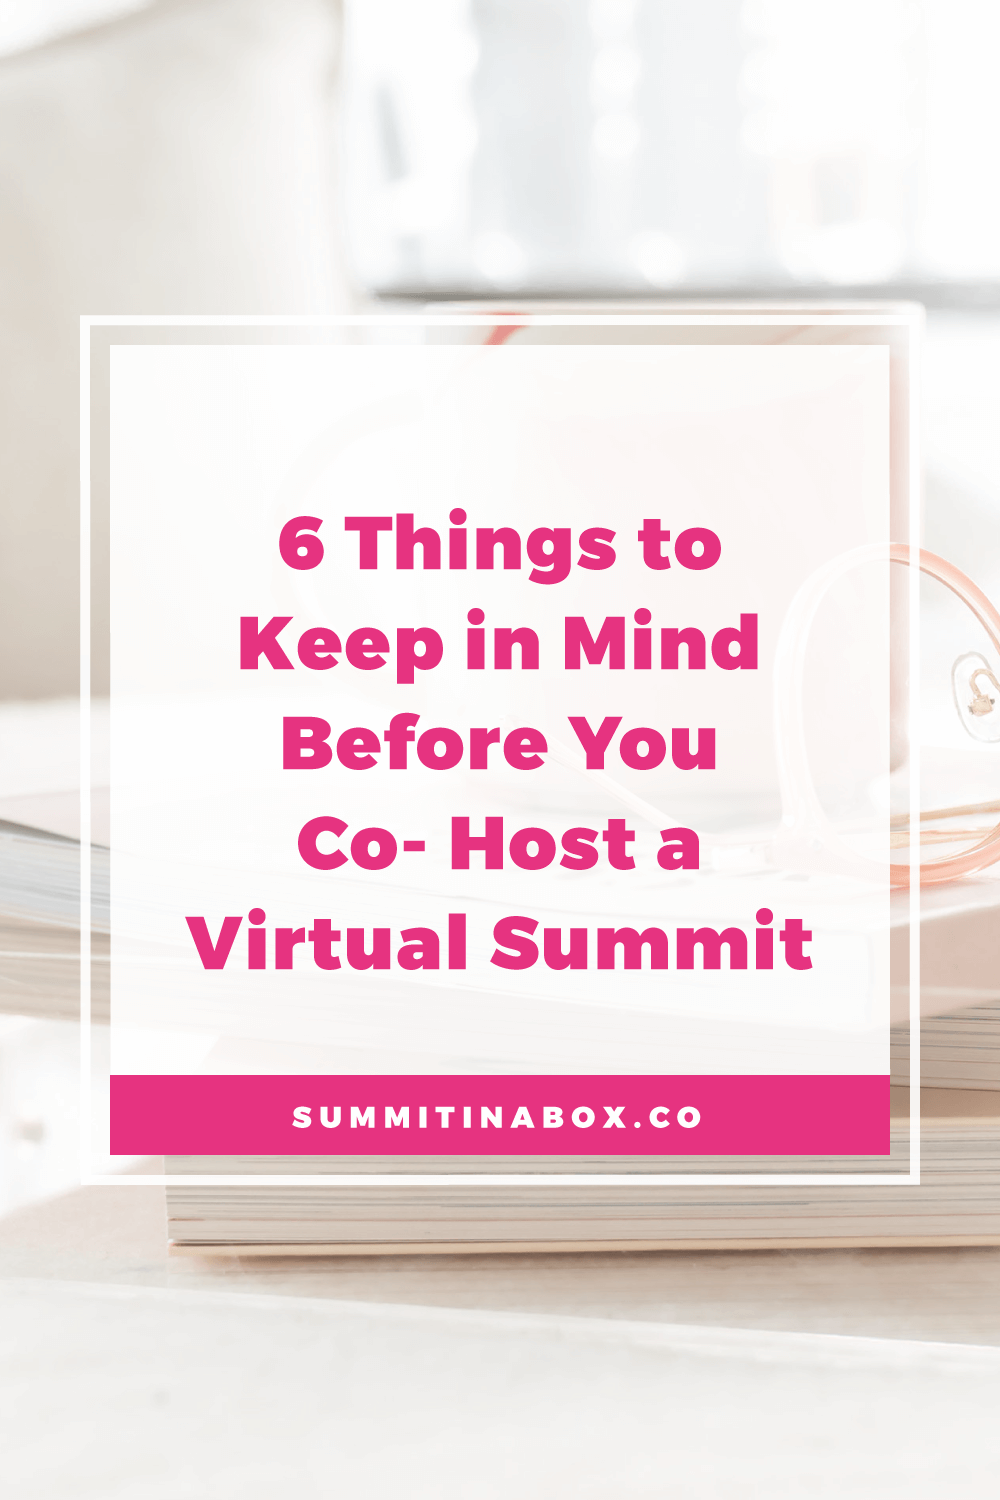 Here's what to consider before you co-host a virtual summit including the good parts, things to keep in mind, and how to split tasks with your partner.